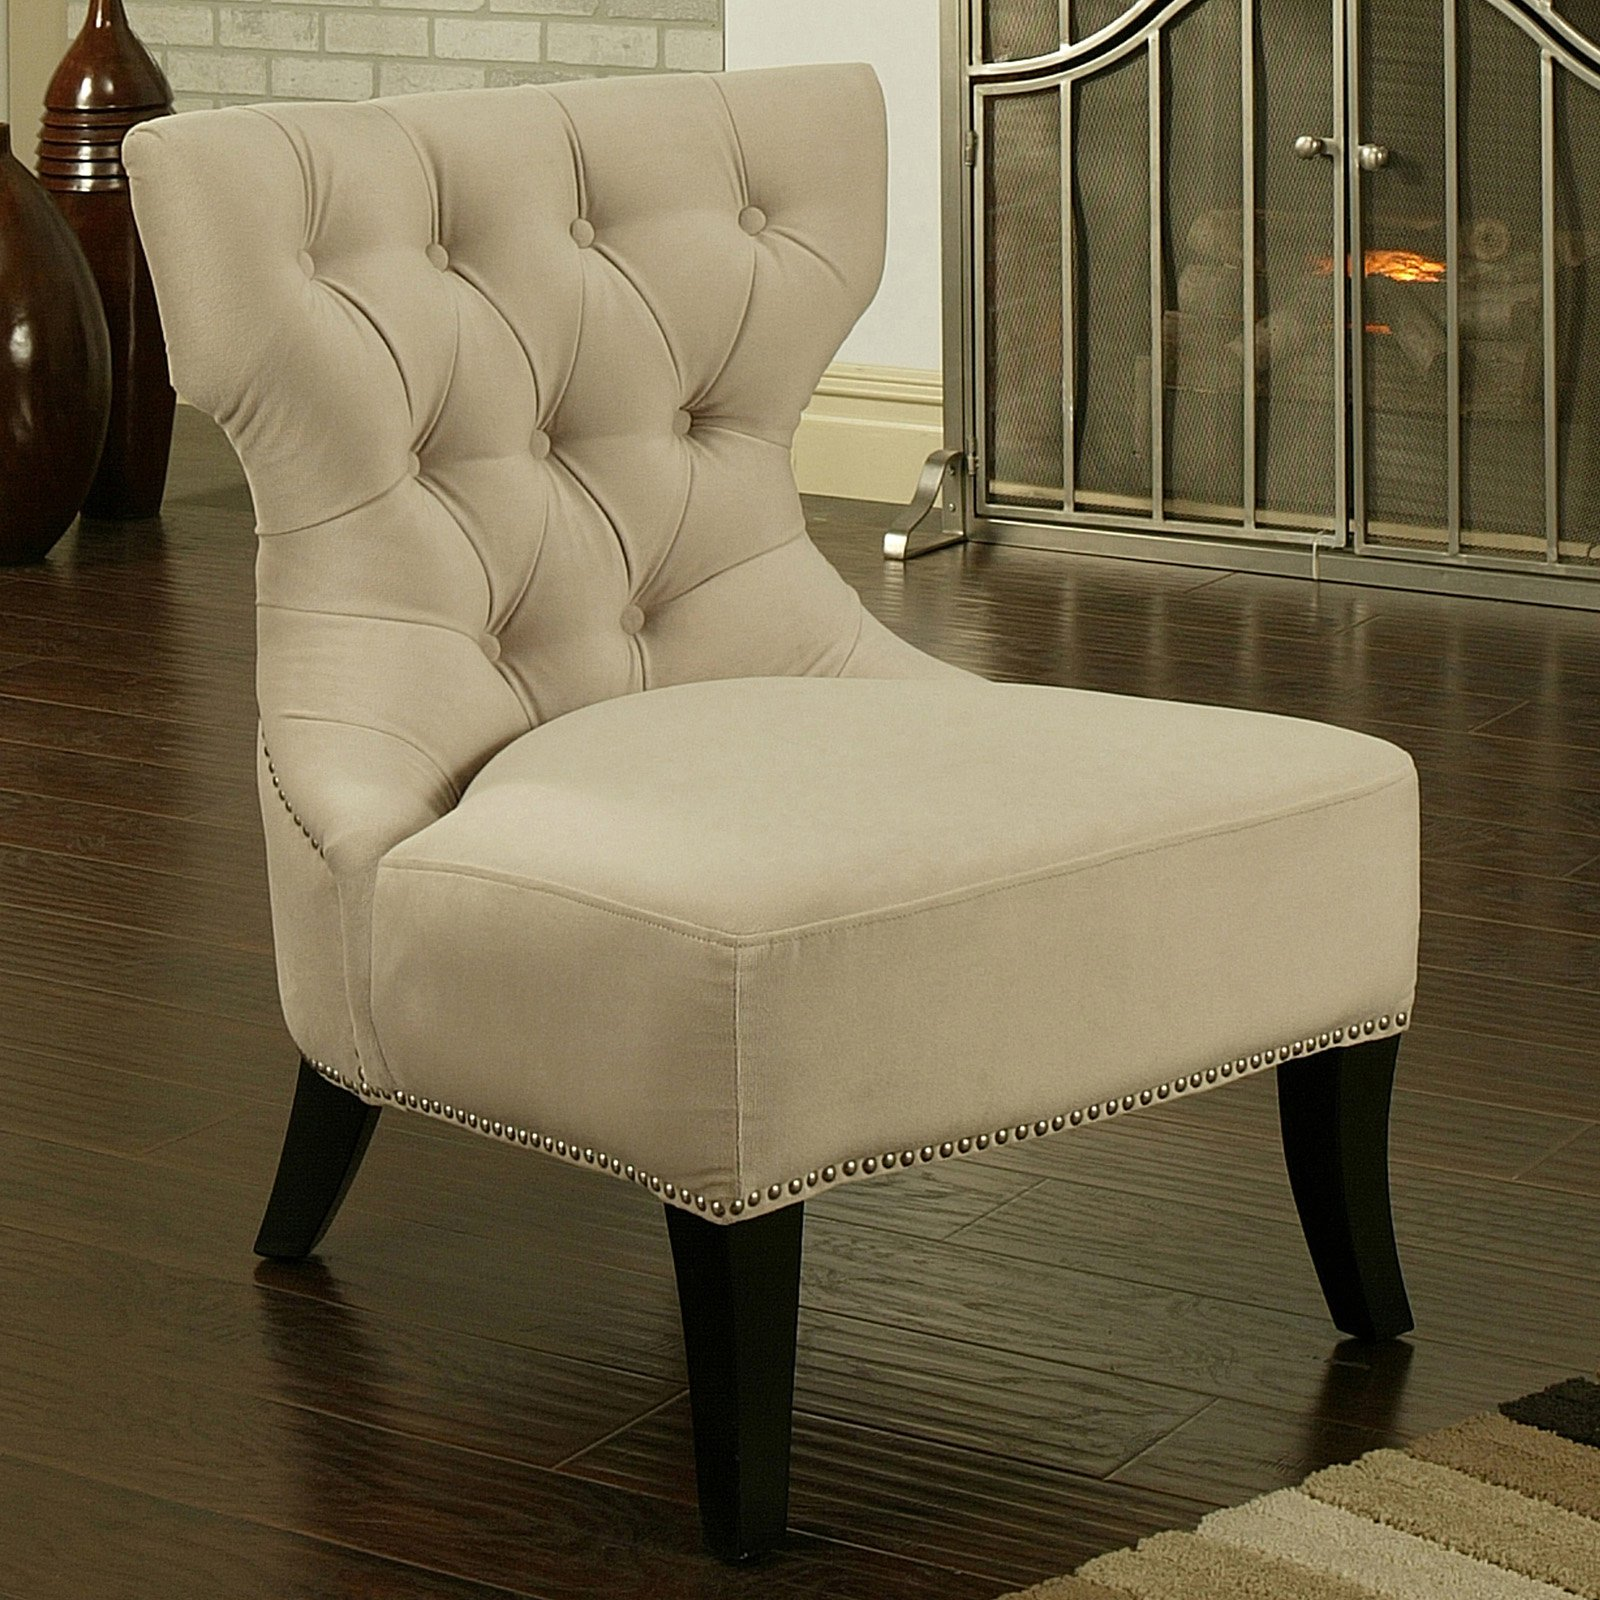 Superior Sedona Light Cream Microfiber Suede Chair   Walmart.com